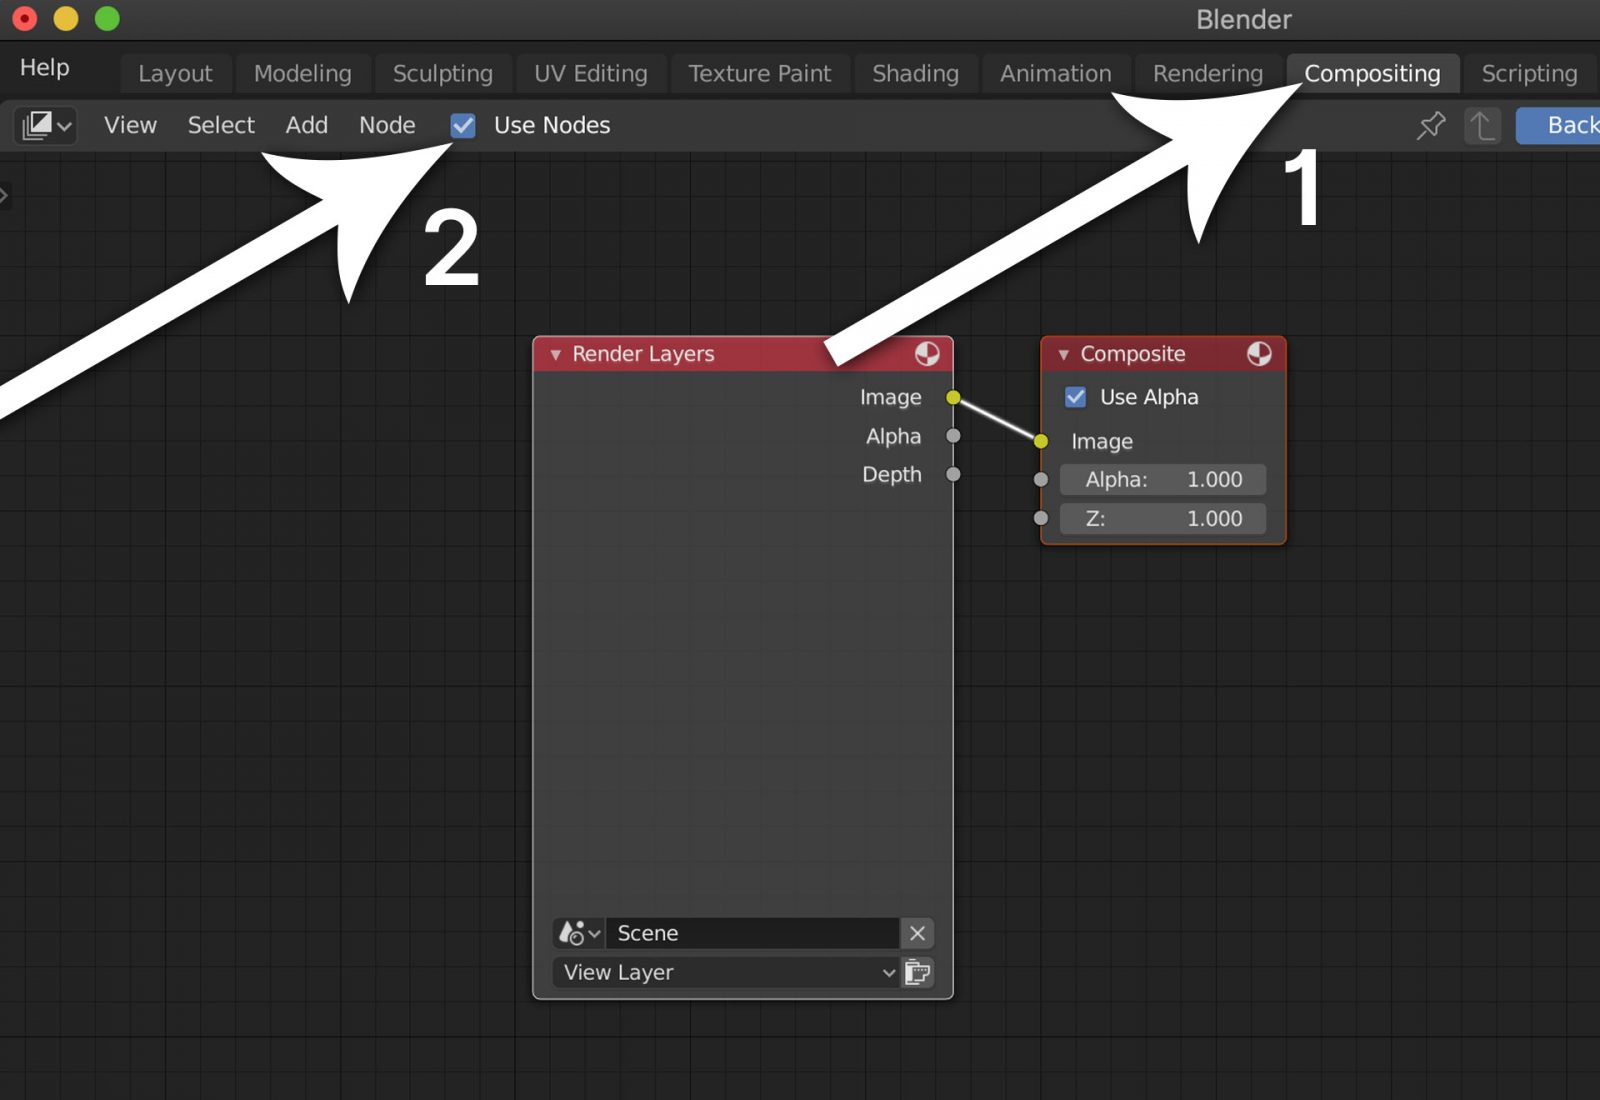 Render a Background Image Using Blender 2.8 - step 9 go to compositing workspace and select use nodes